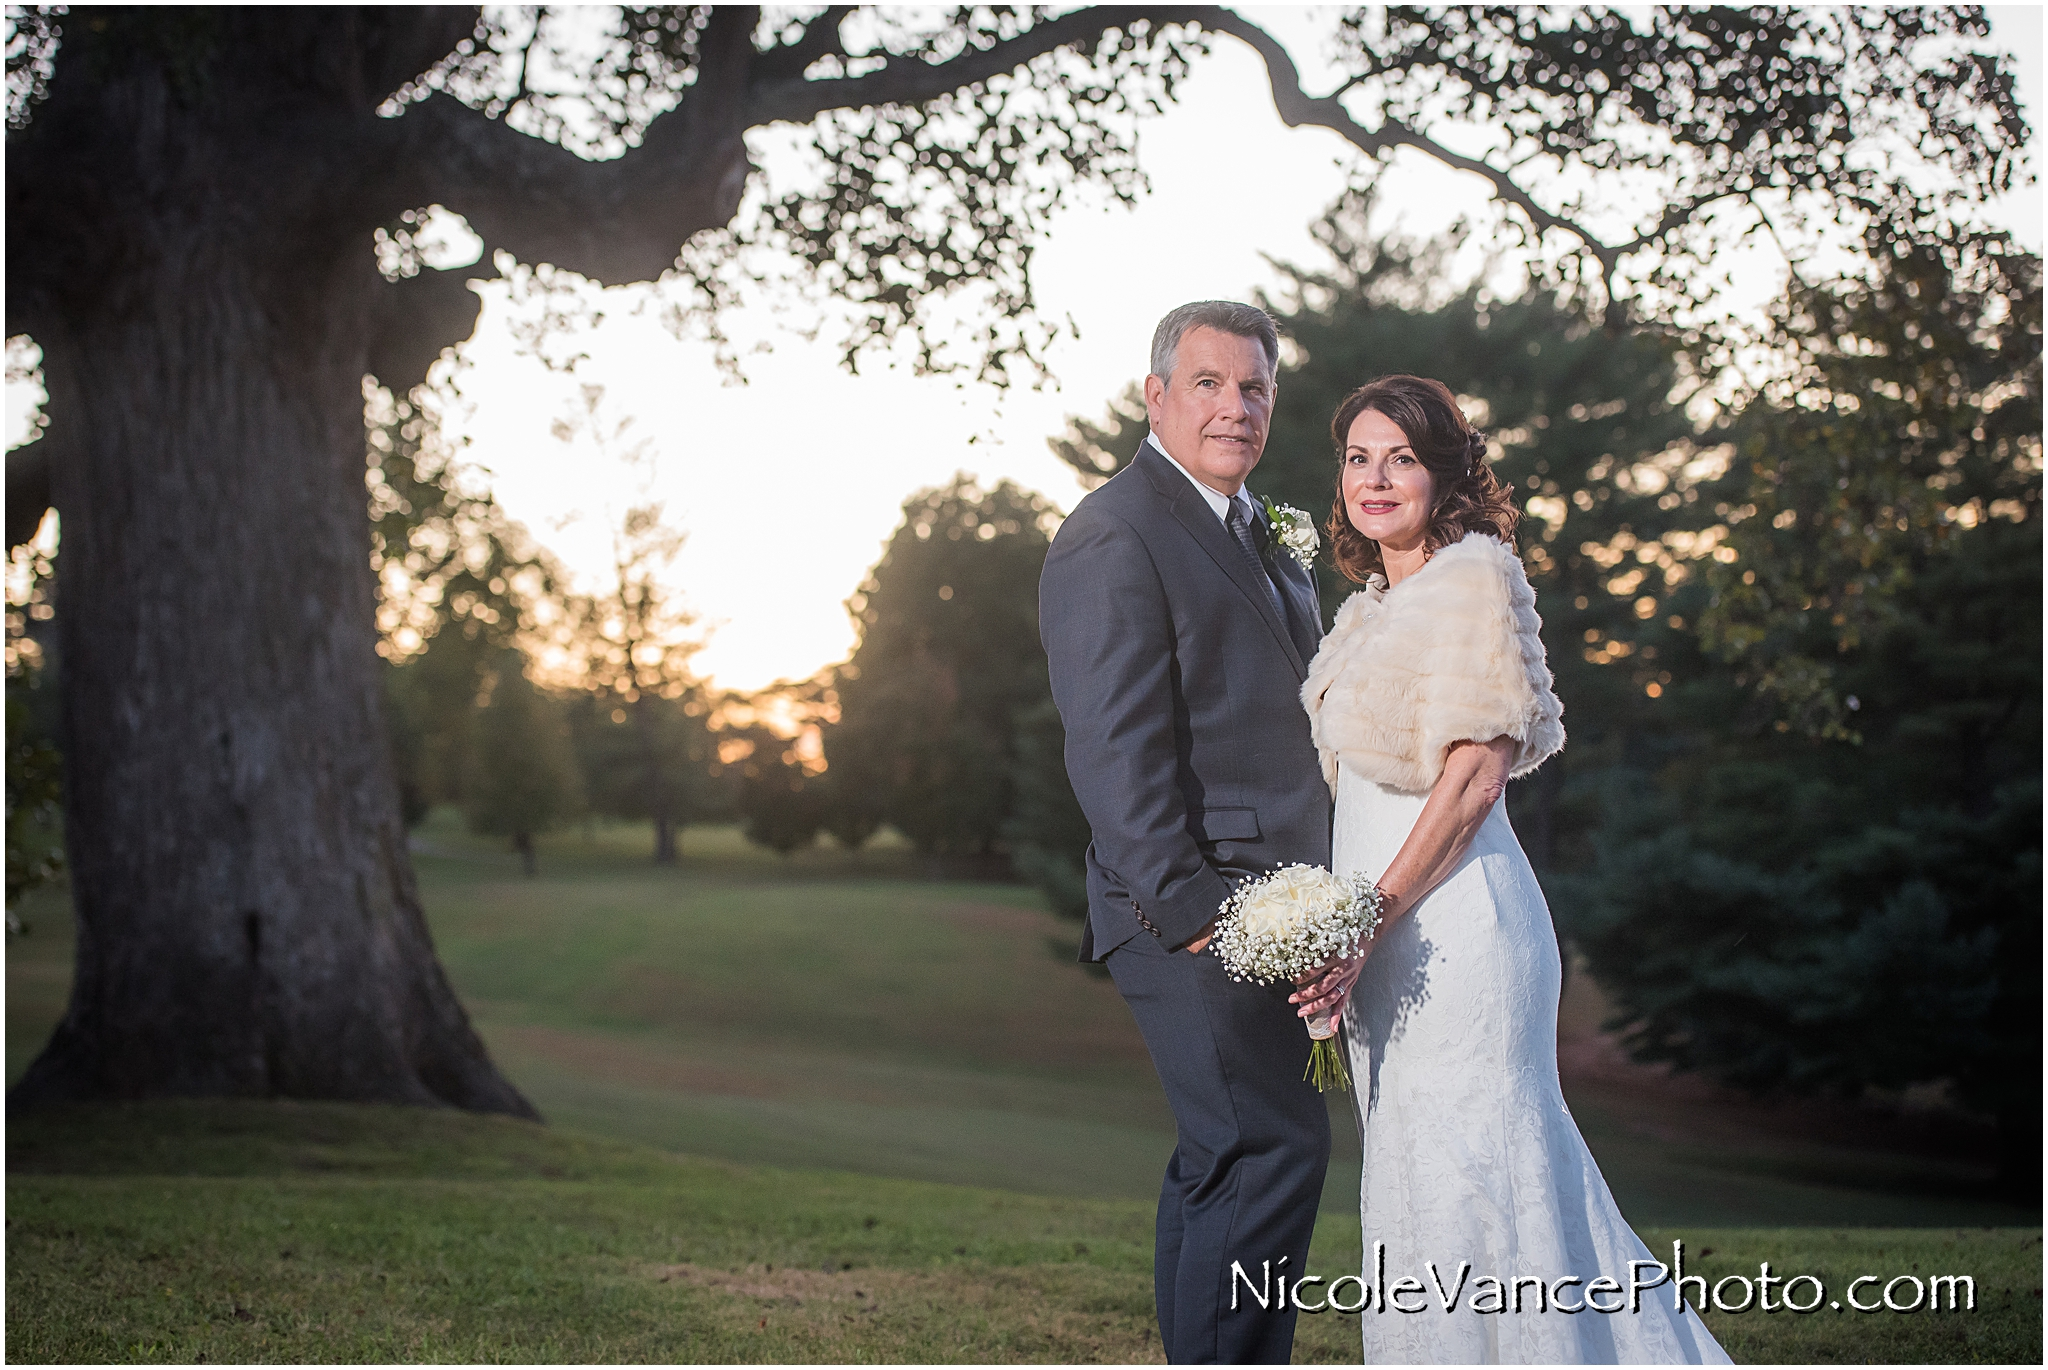 Bride and Groom portraits at Maymont Park.